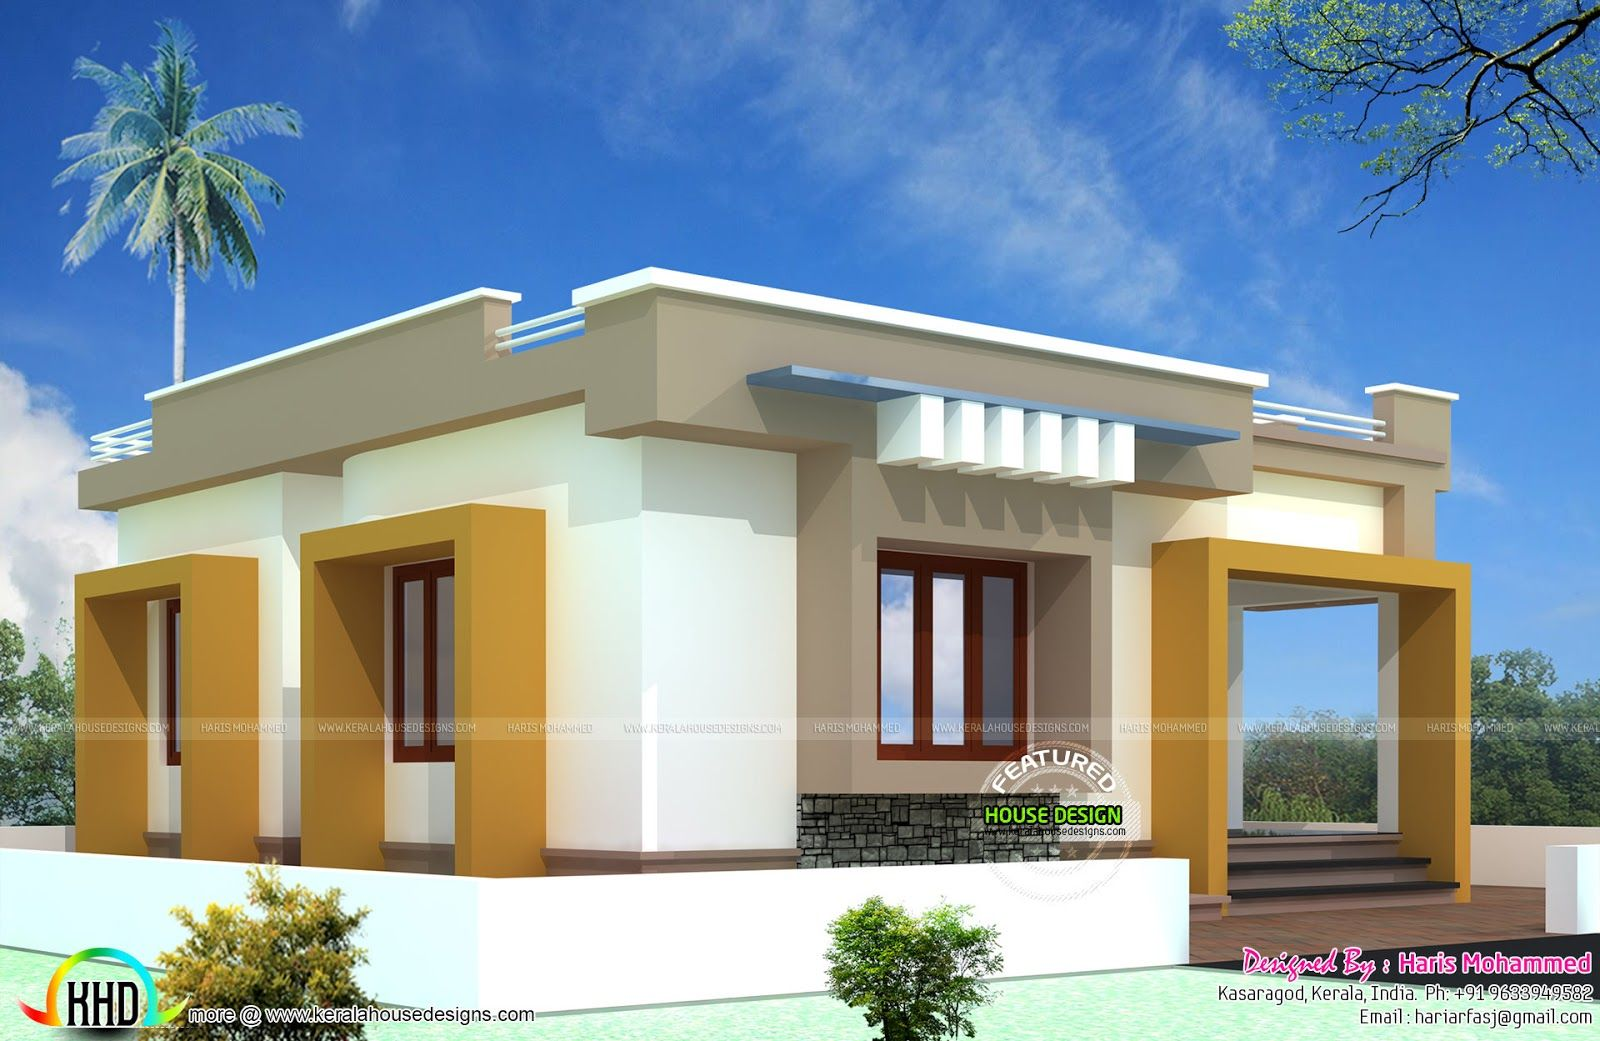 u20b910 lakhs budget smallbudget single floor house